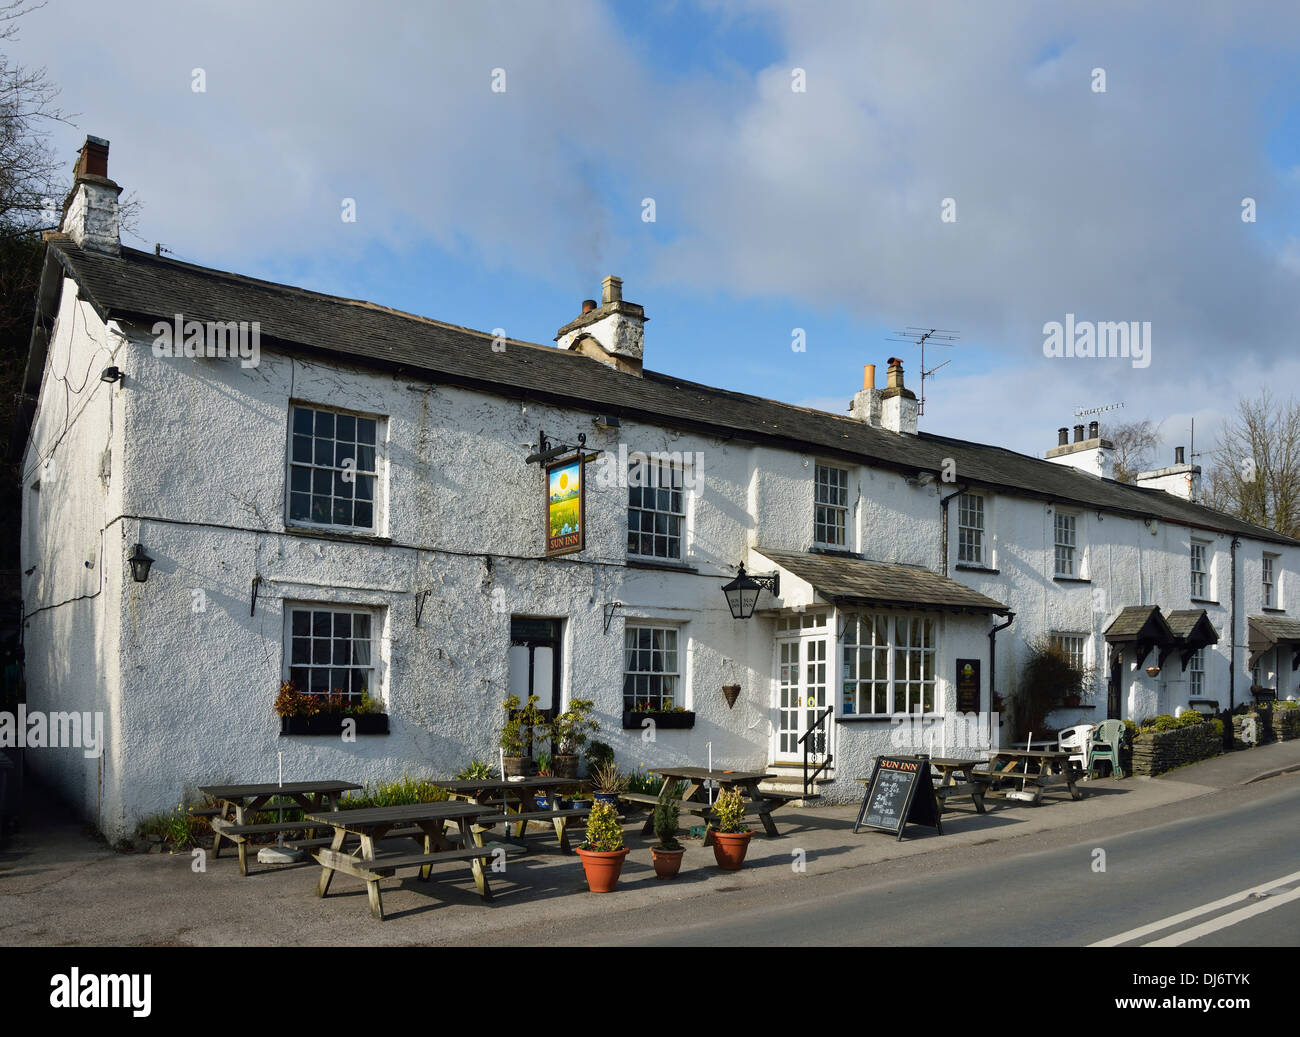 The Sun Inn, Crook, Lake District National Park, Cumbria, England, United Kingdom, Europe. - Stock Image